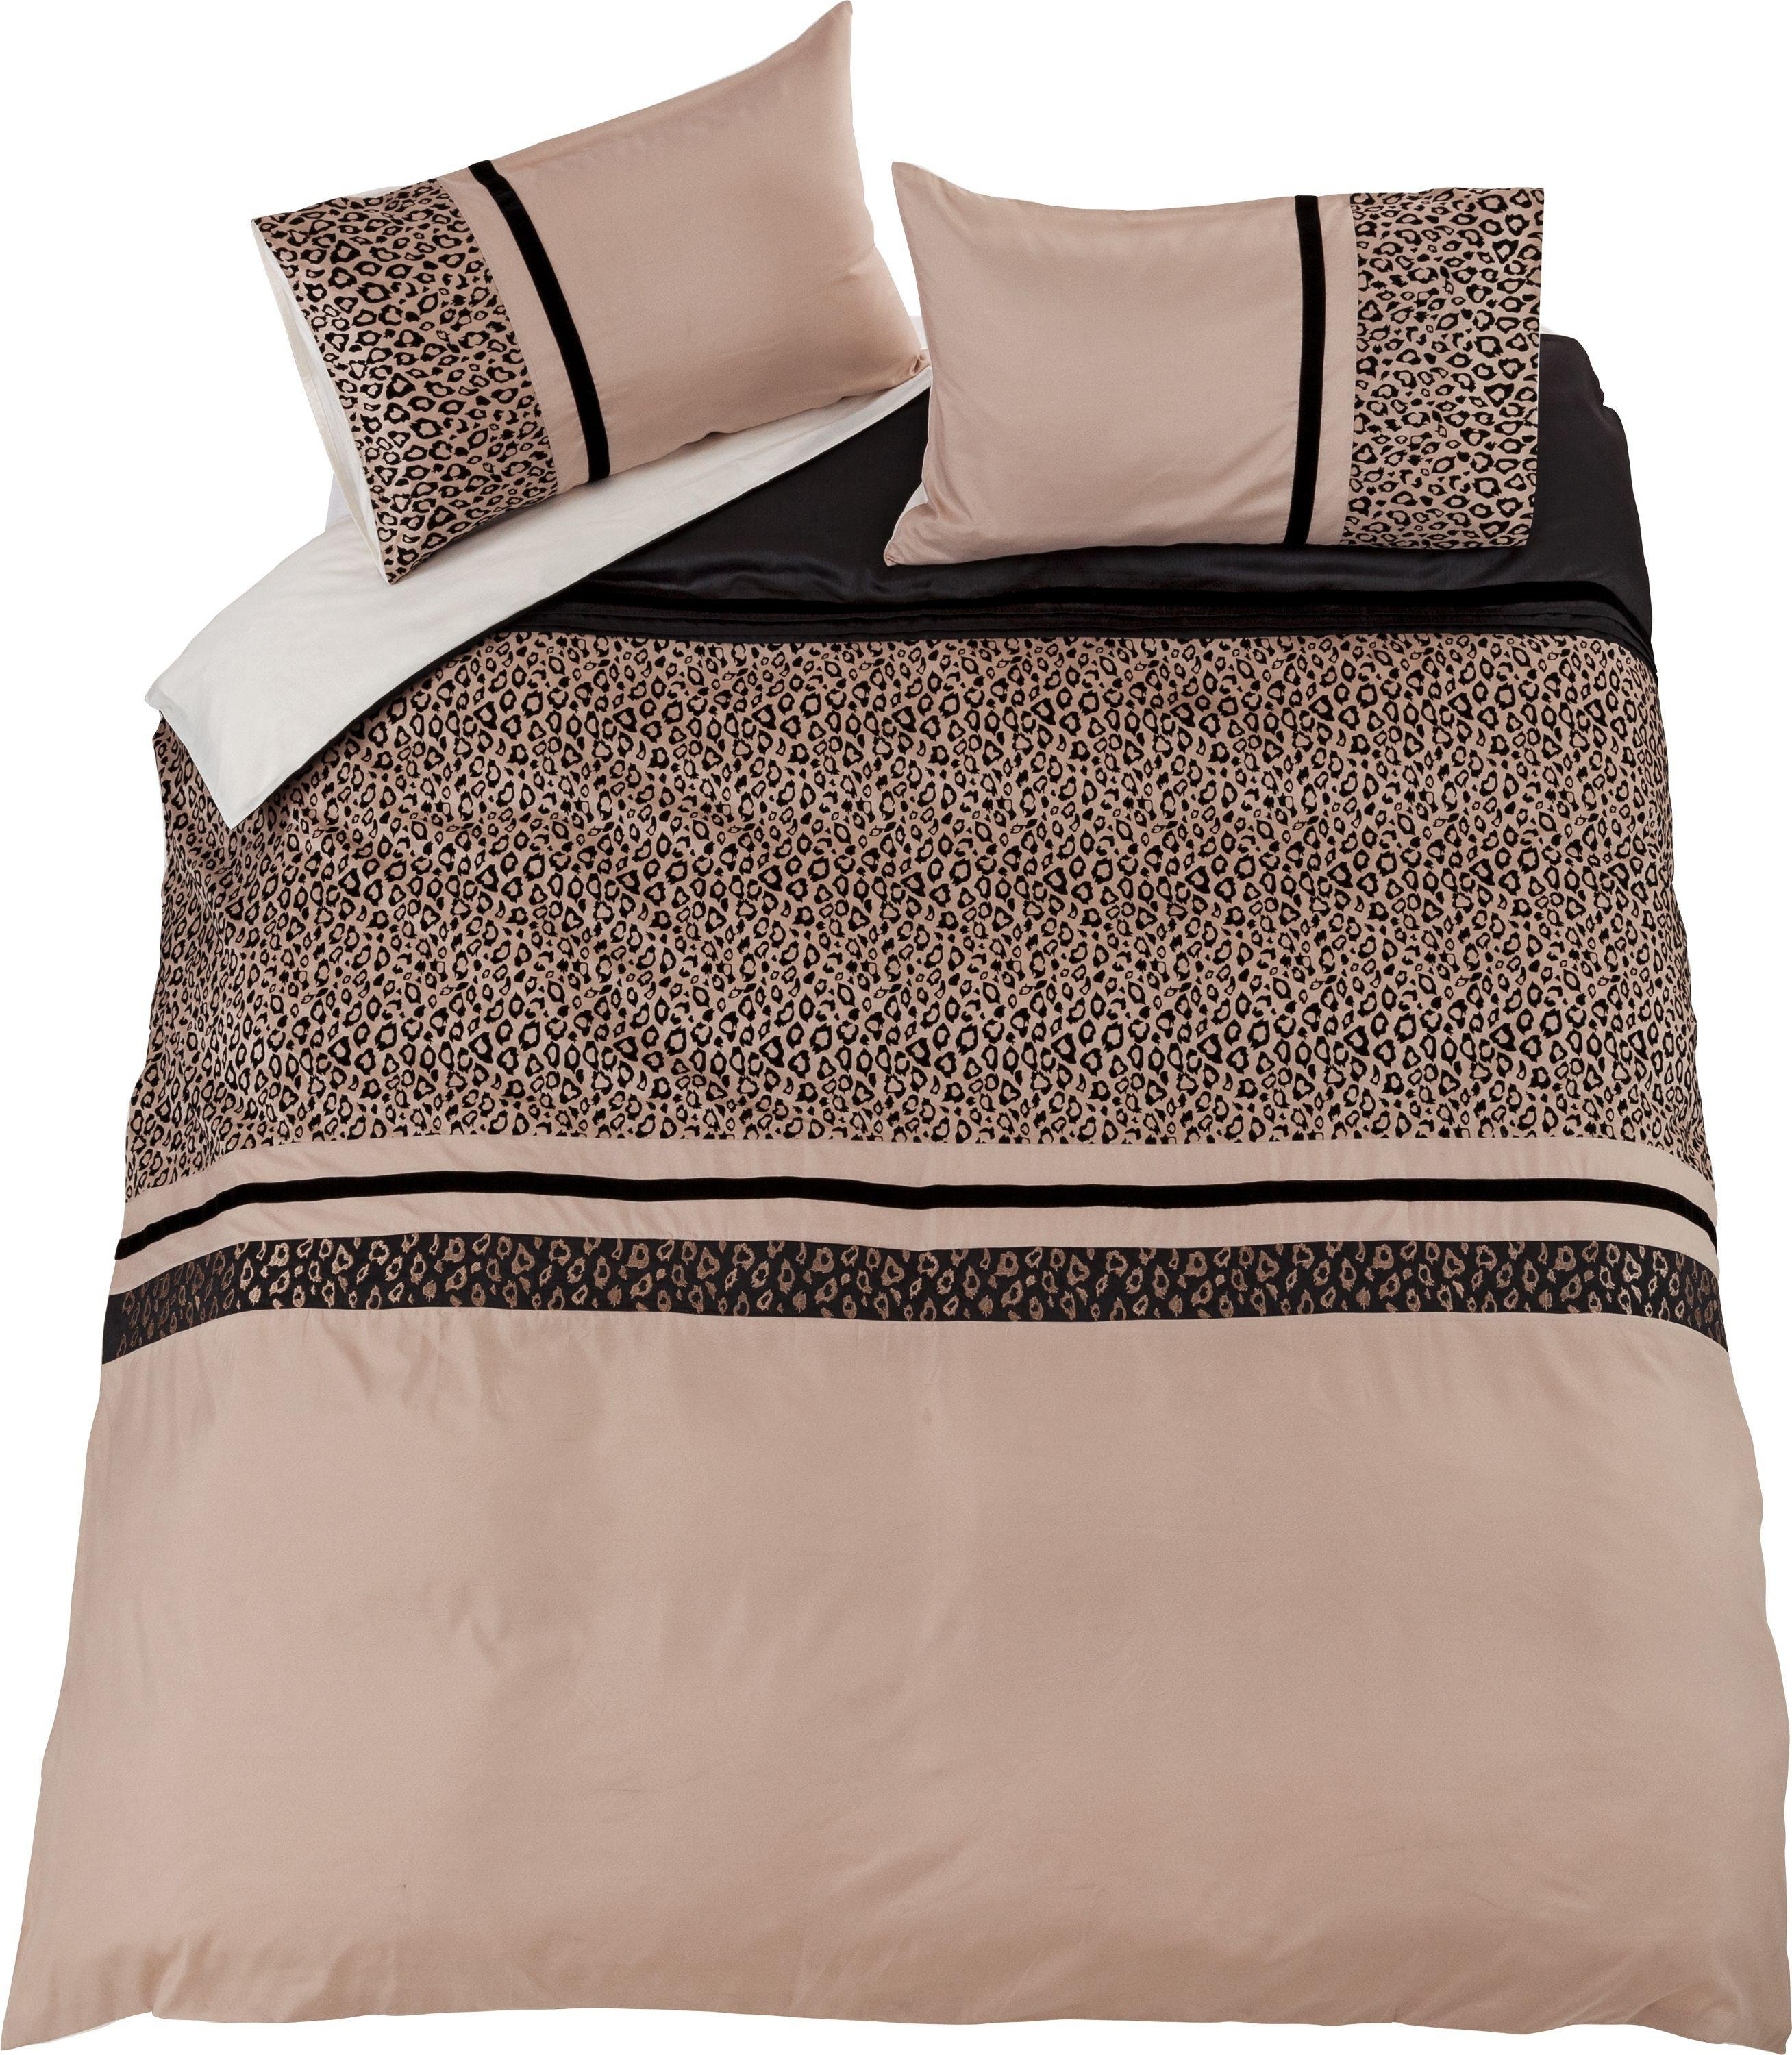 White Double Duvet Cover Argos Mink Duvet Cover Duvet